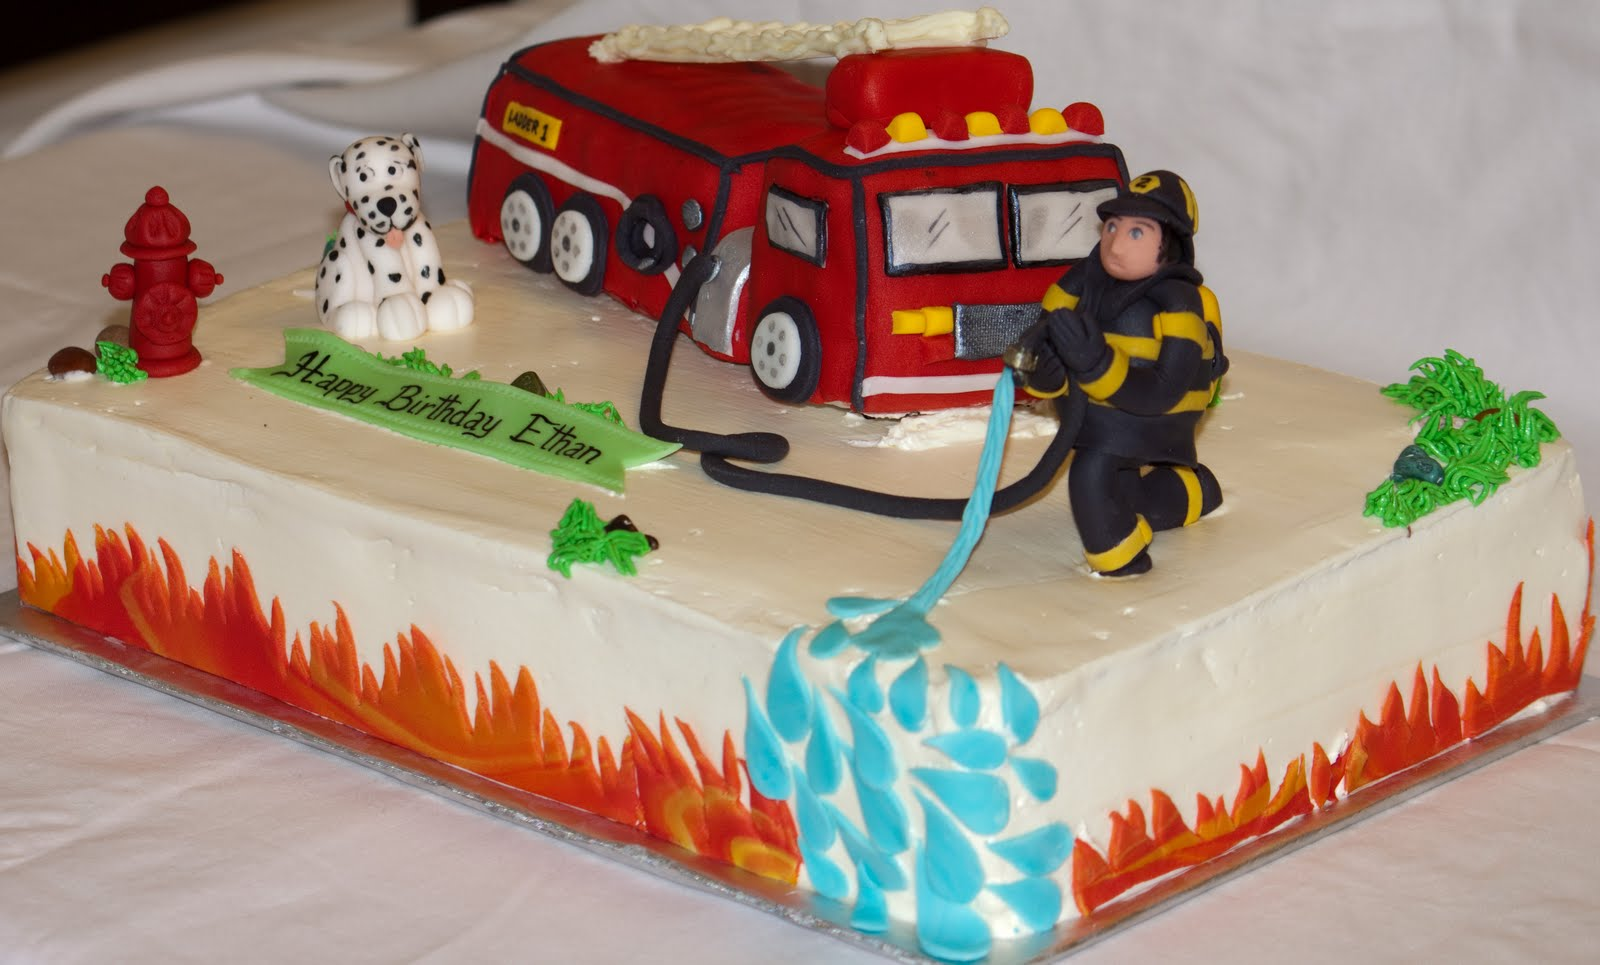 Tremendous Fire Truck Cakes Decoration Ideas Little Birthday Cakes Personalised Birthday Cards Arneslily Jamesorg